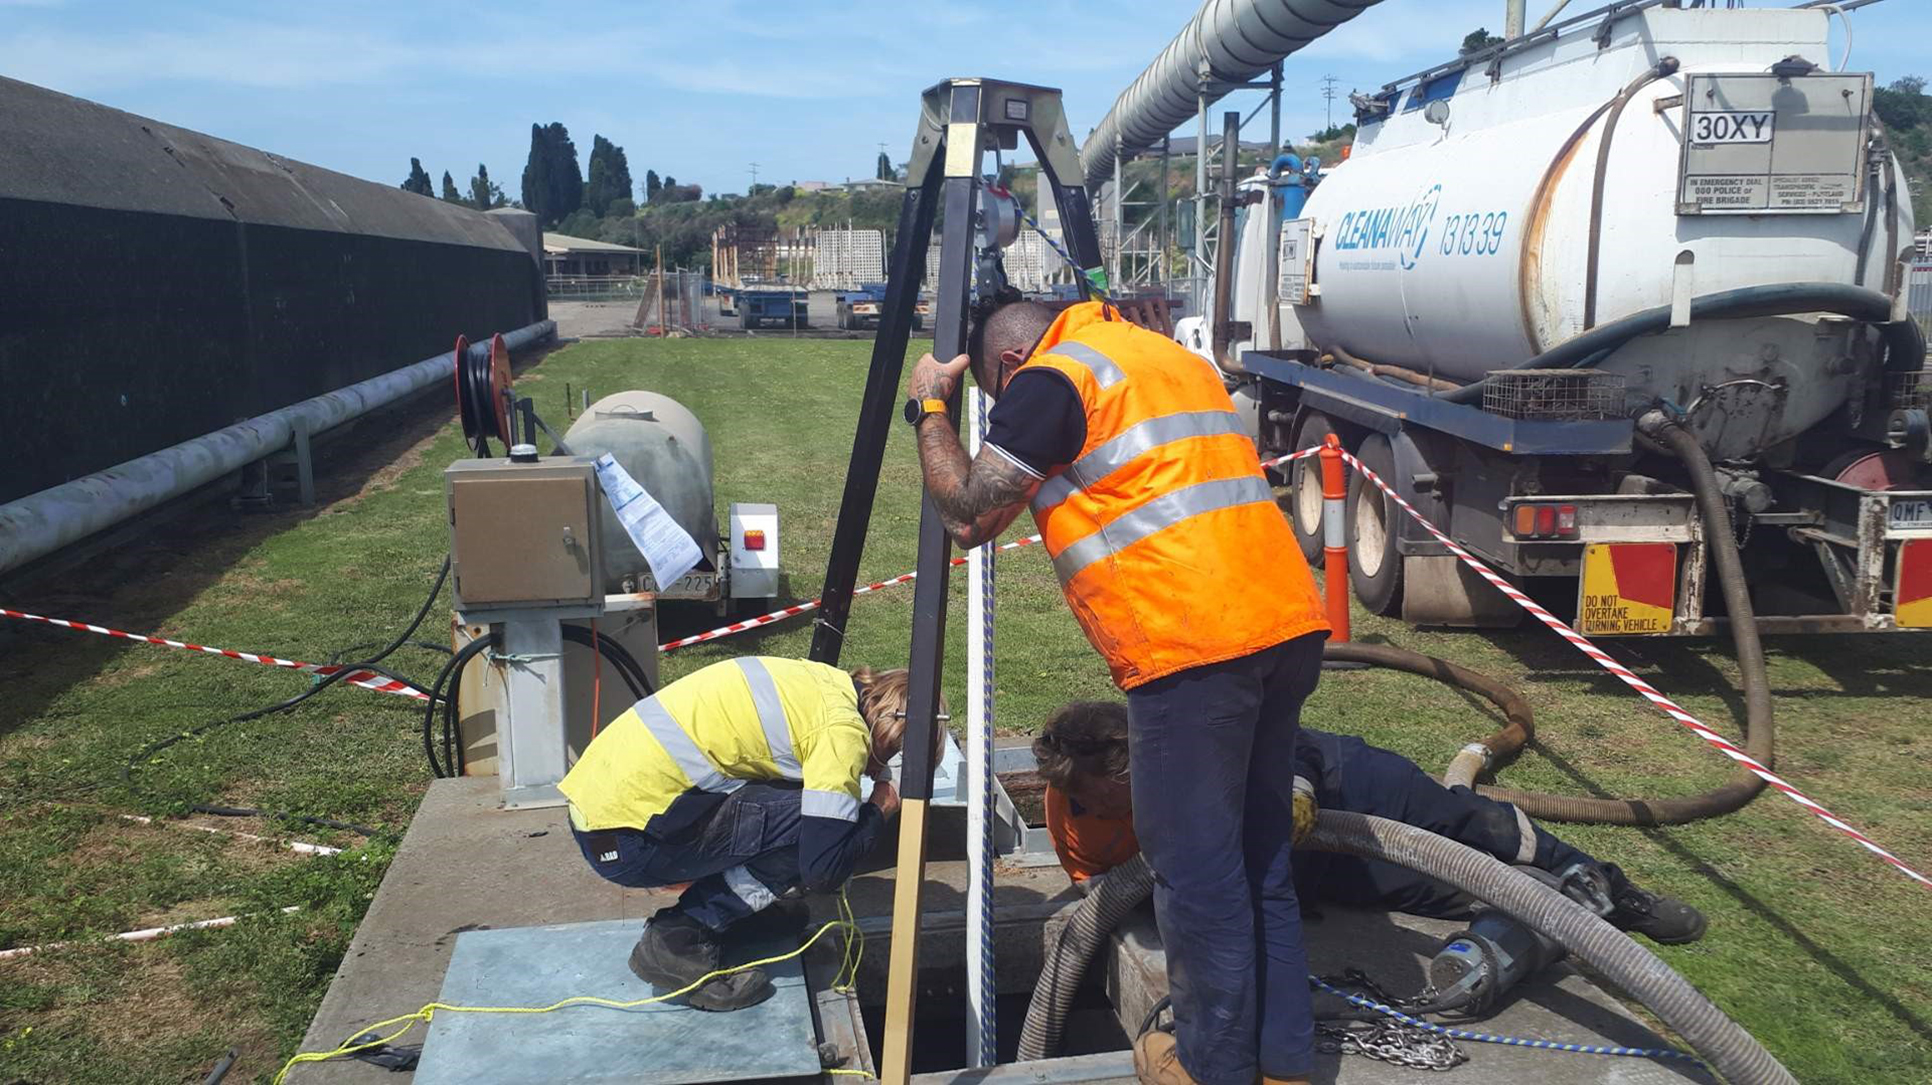 Smarter Safer Solutions undertake confined space project at the port of portland